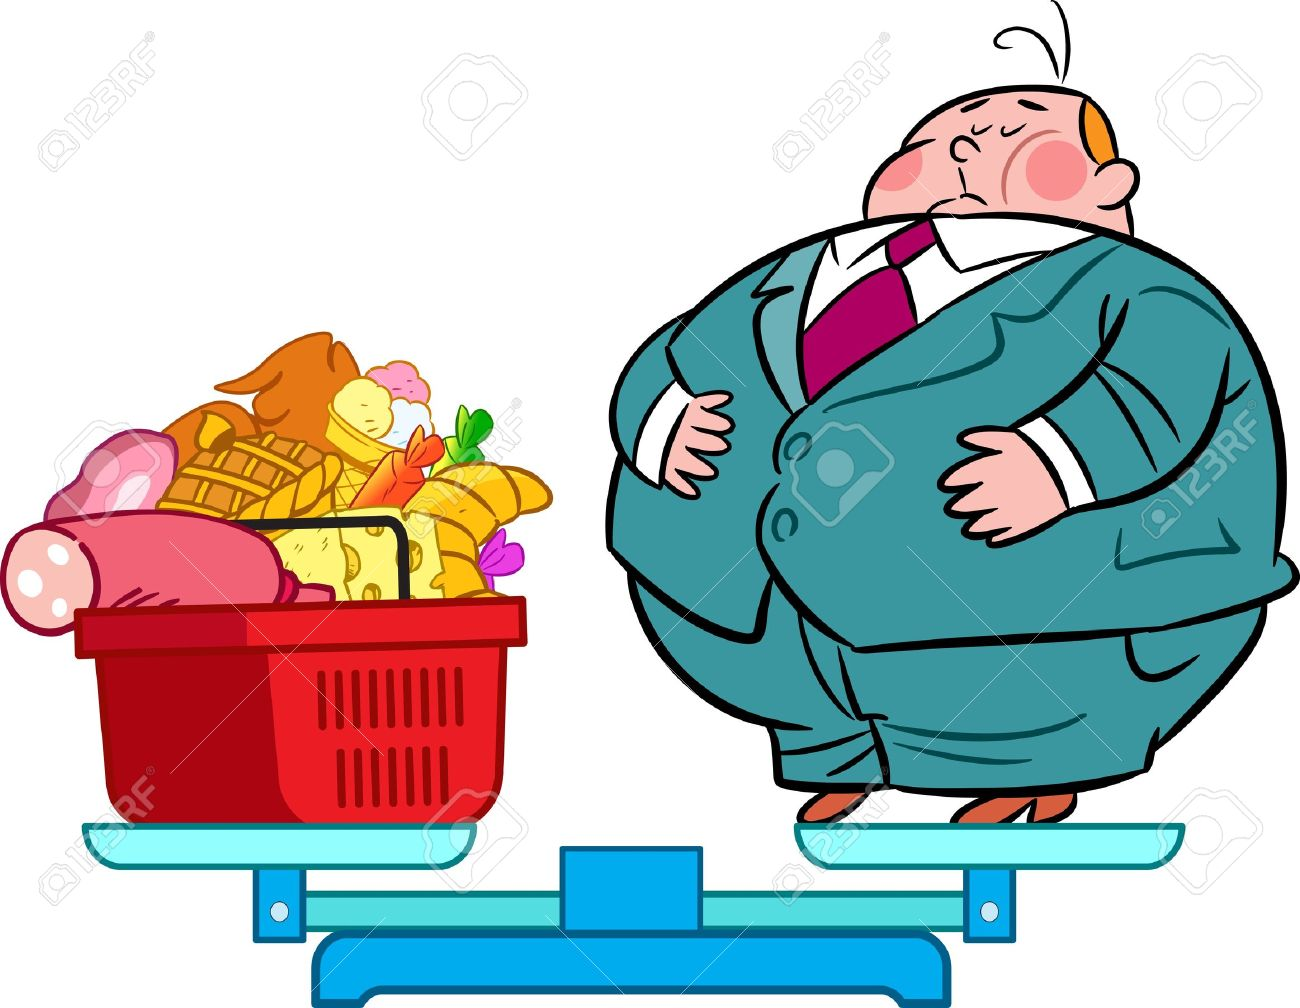 Free funny clipart of overweight people on scales.